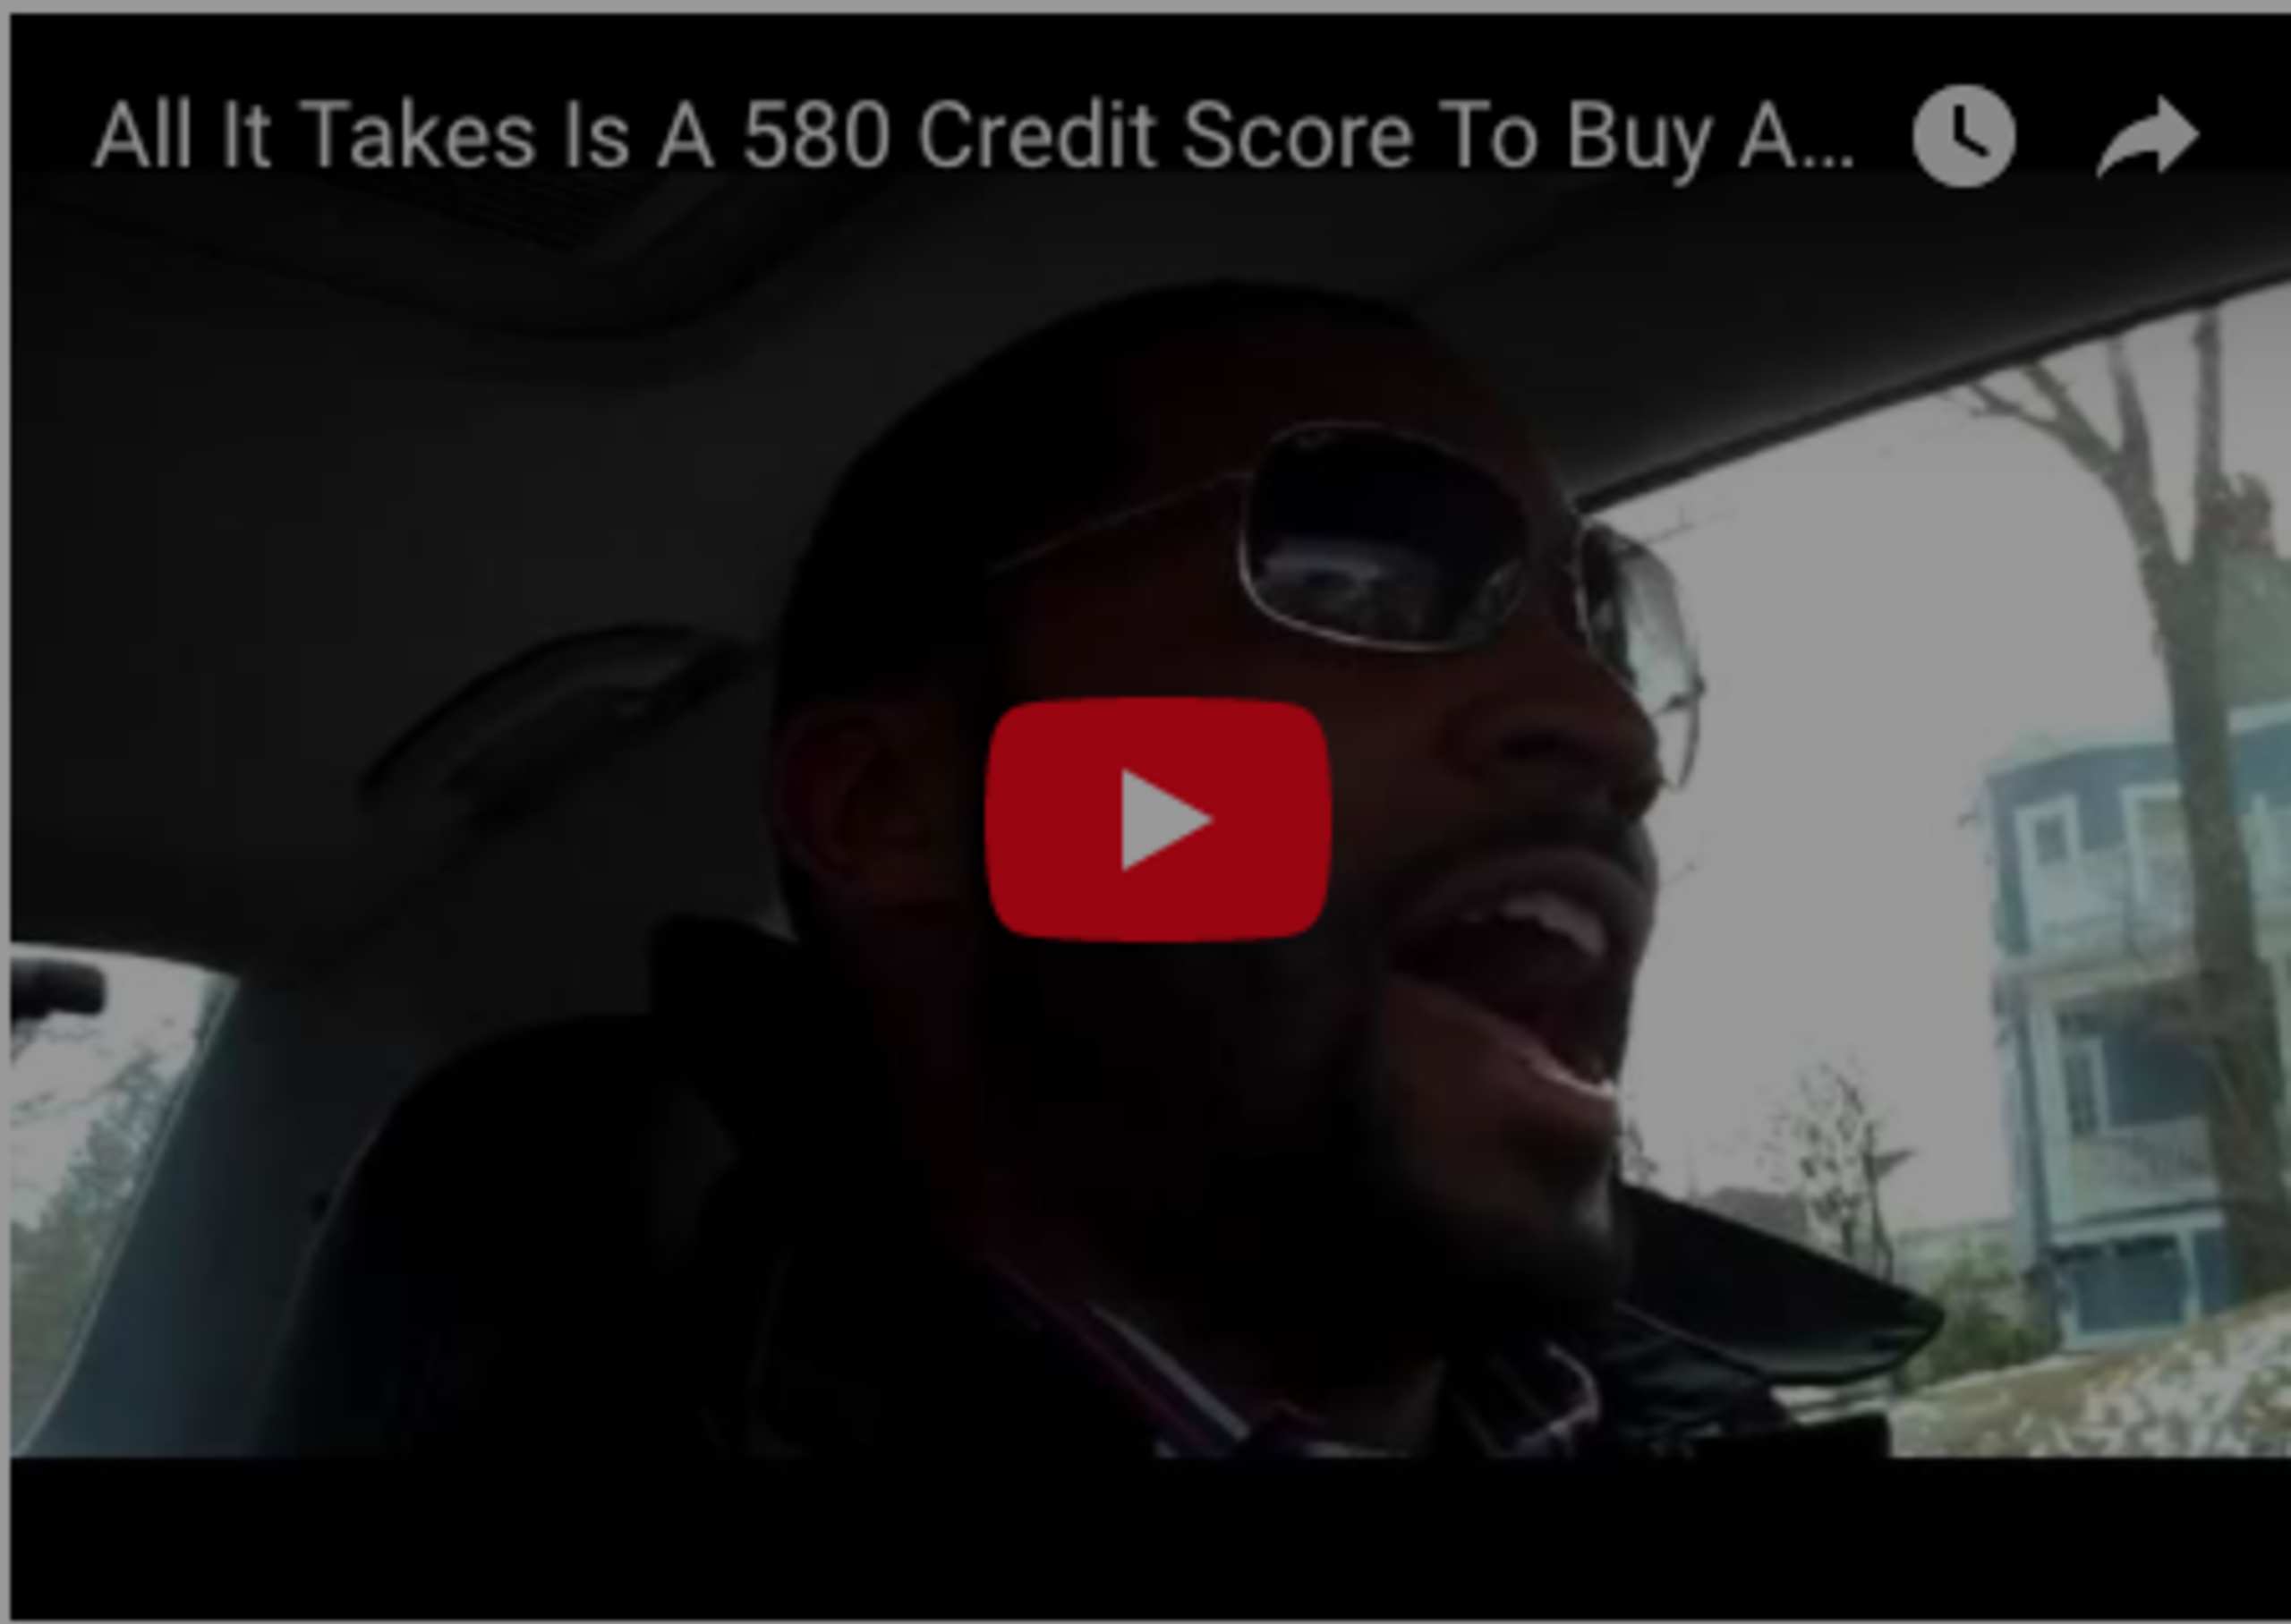 All It Takes Is A 580 Credit Score To Buy A Home